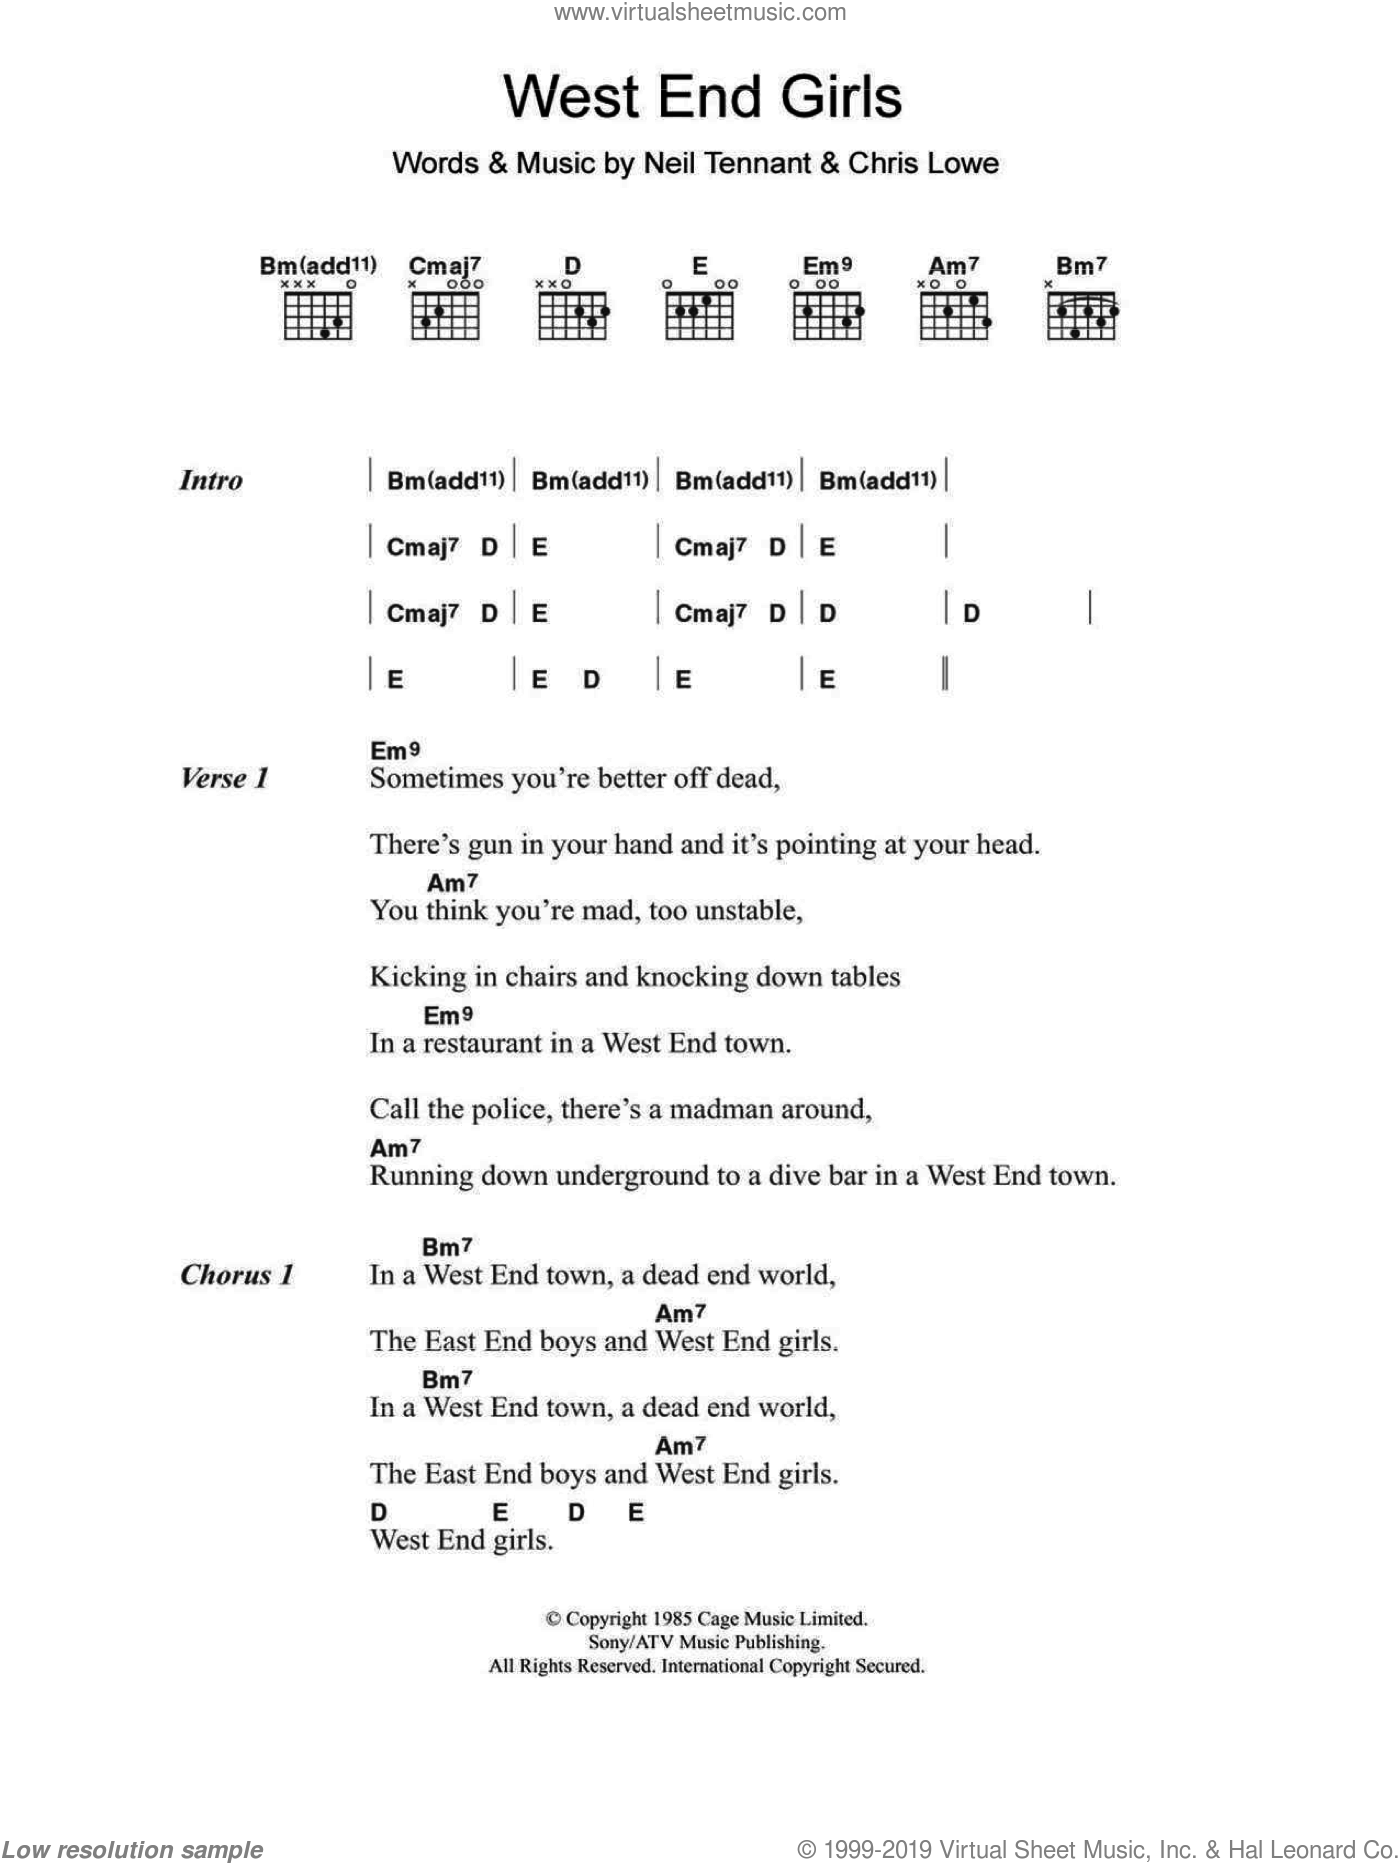 West End Girls sheet music for guitar (chords) by Neil Tennant